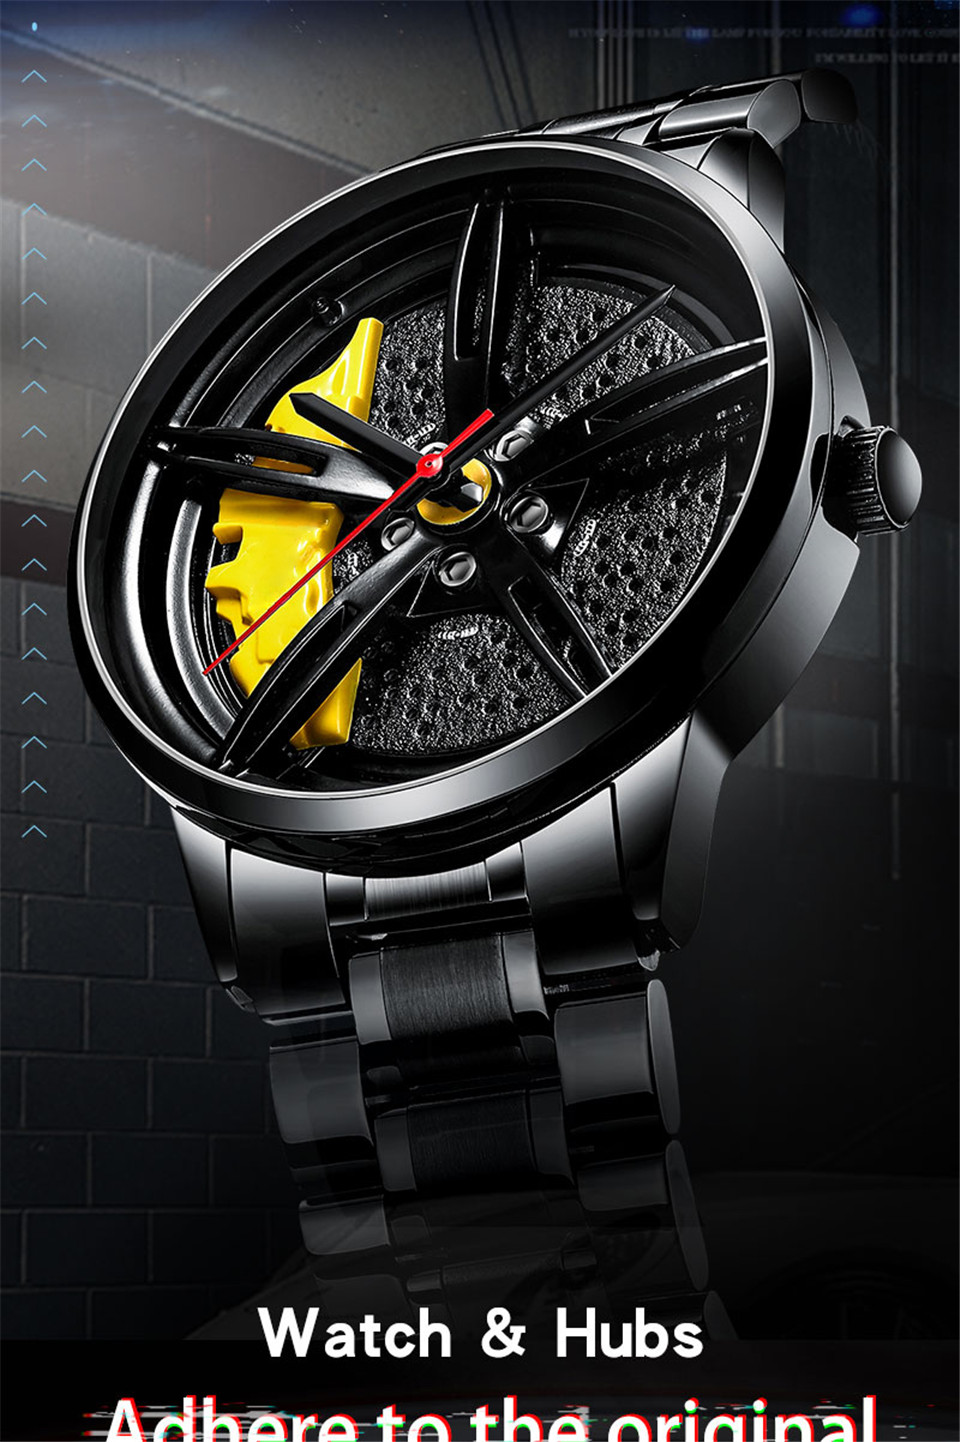 He1ecbf47d2974b4c9eed11be5353af5fl 2020 Nektom Men Watch Sports Car Watch Wheel Rim Design Car